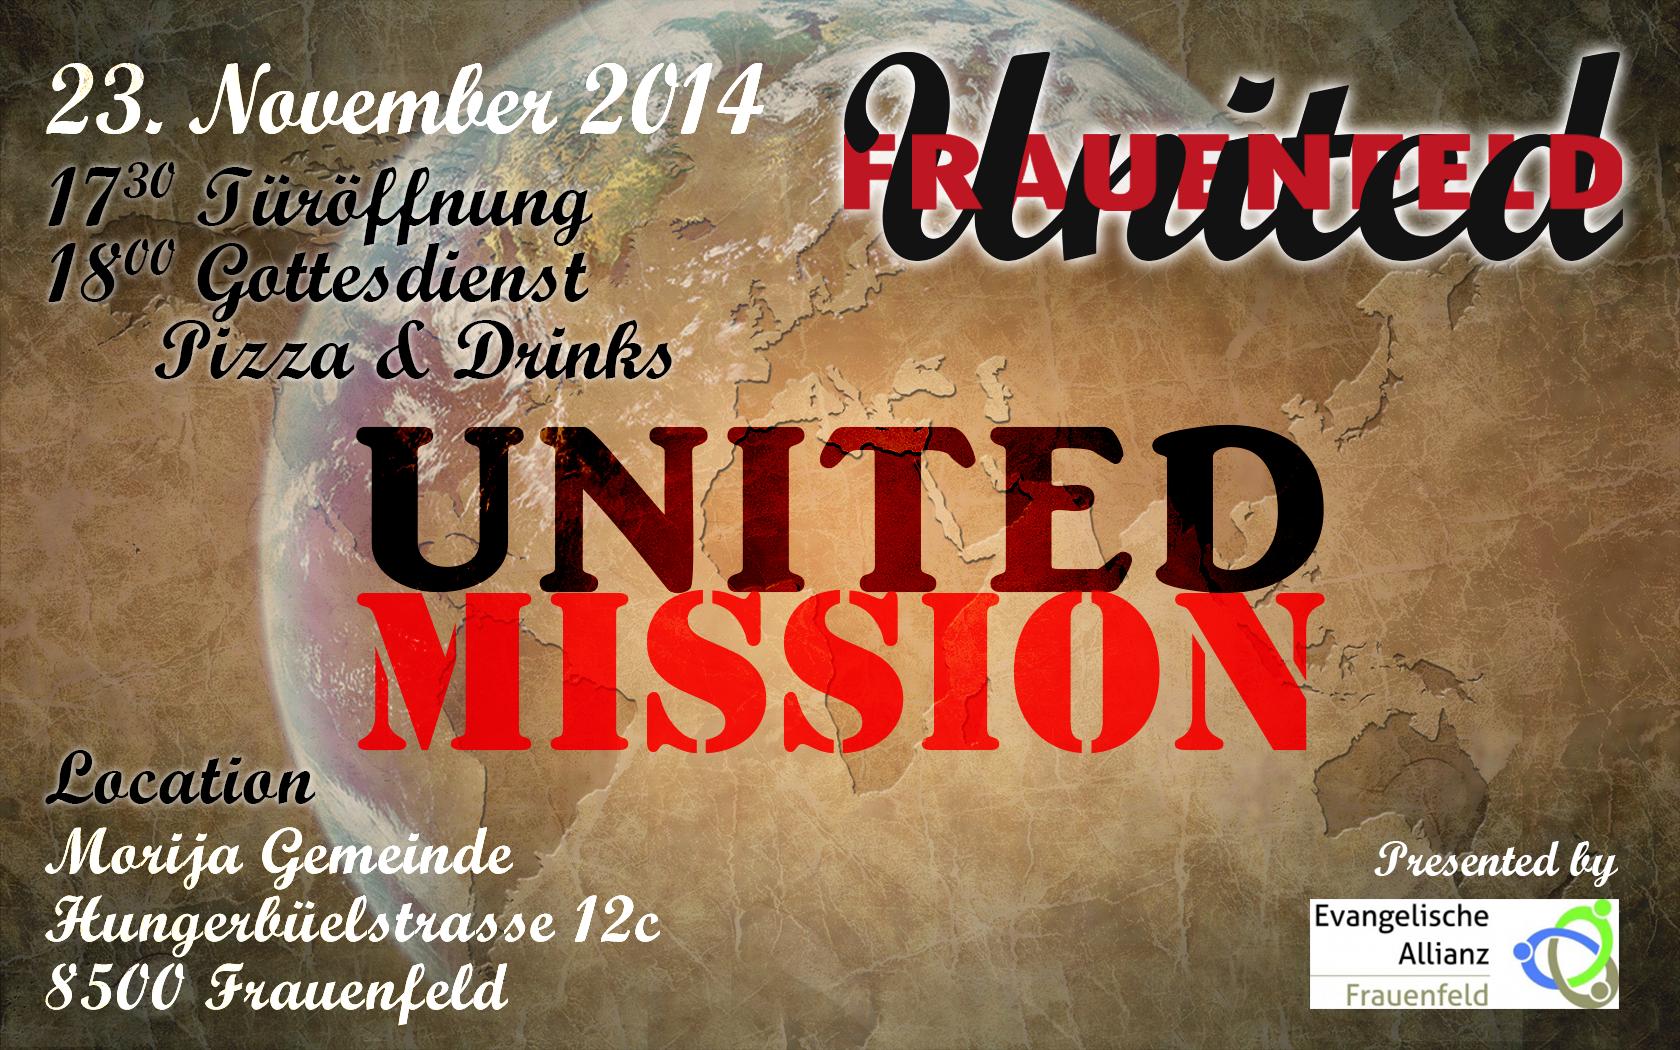 141123_Flyer_FFUnited_UnitedMission_v0-4